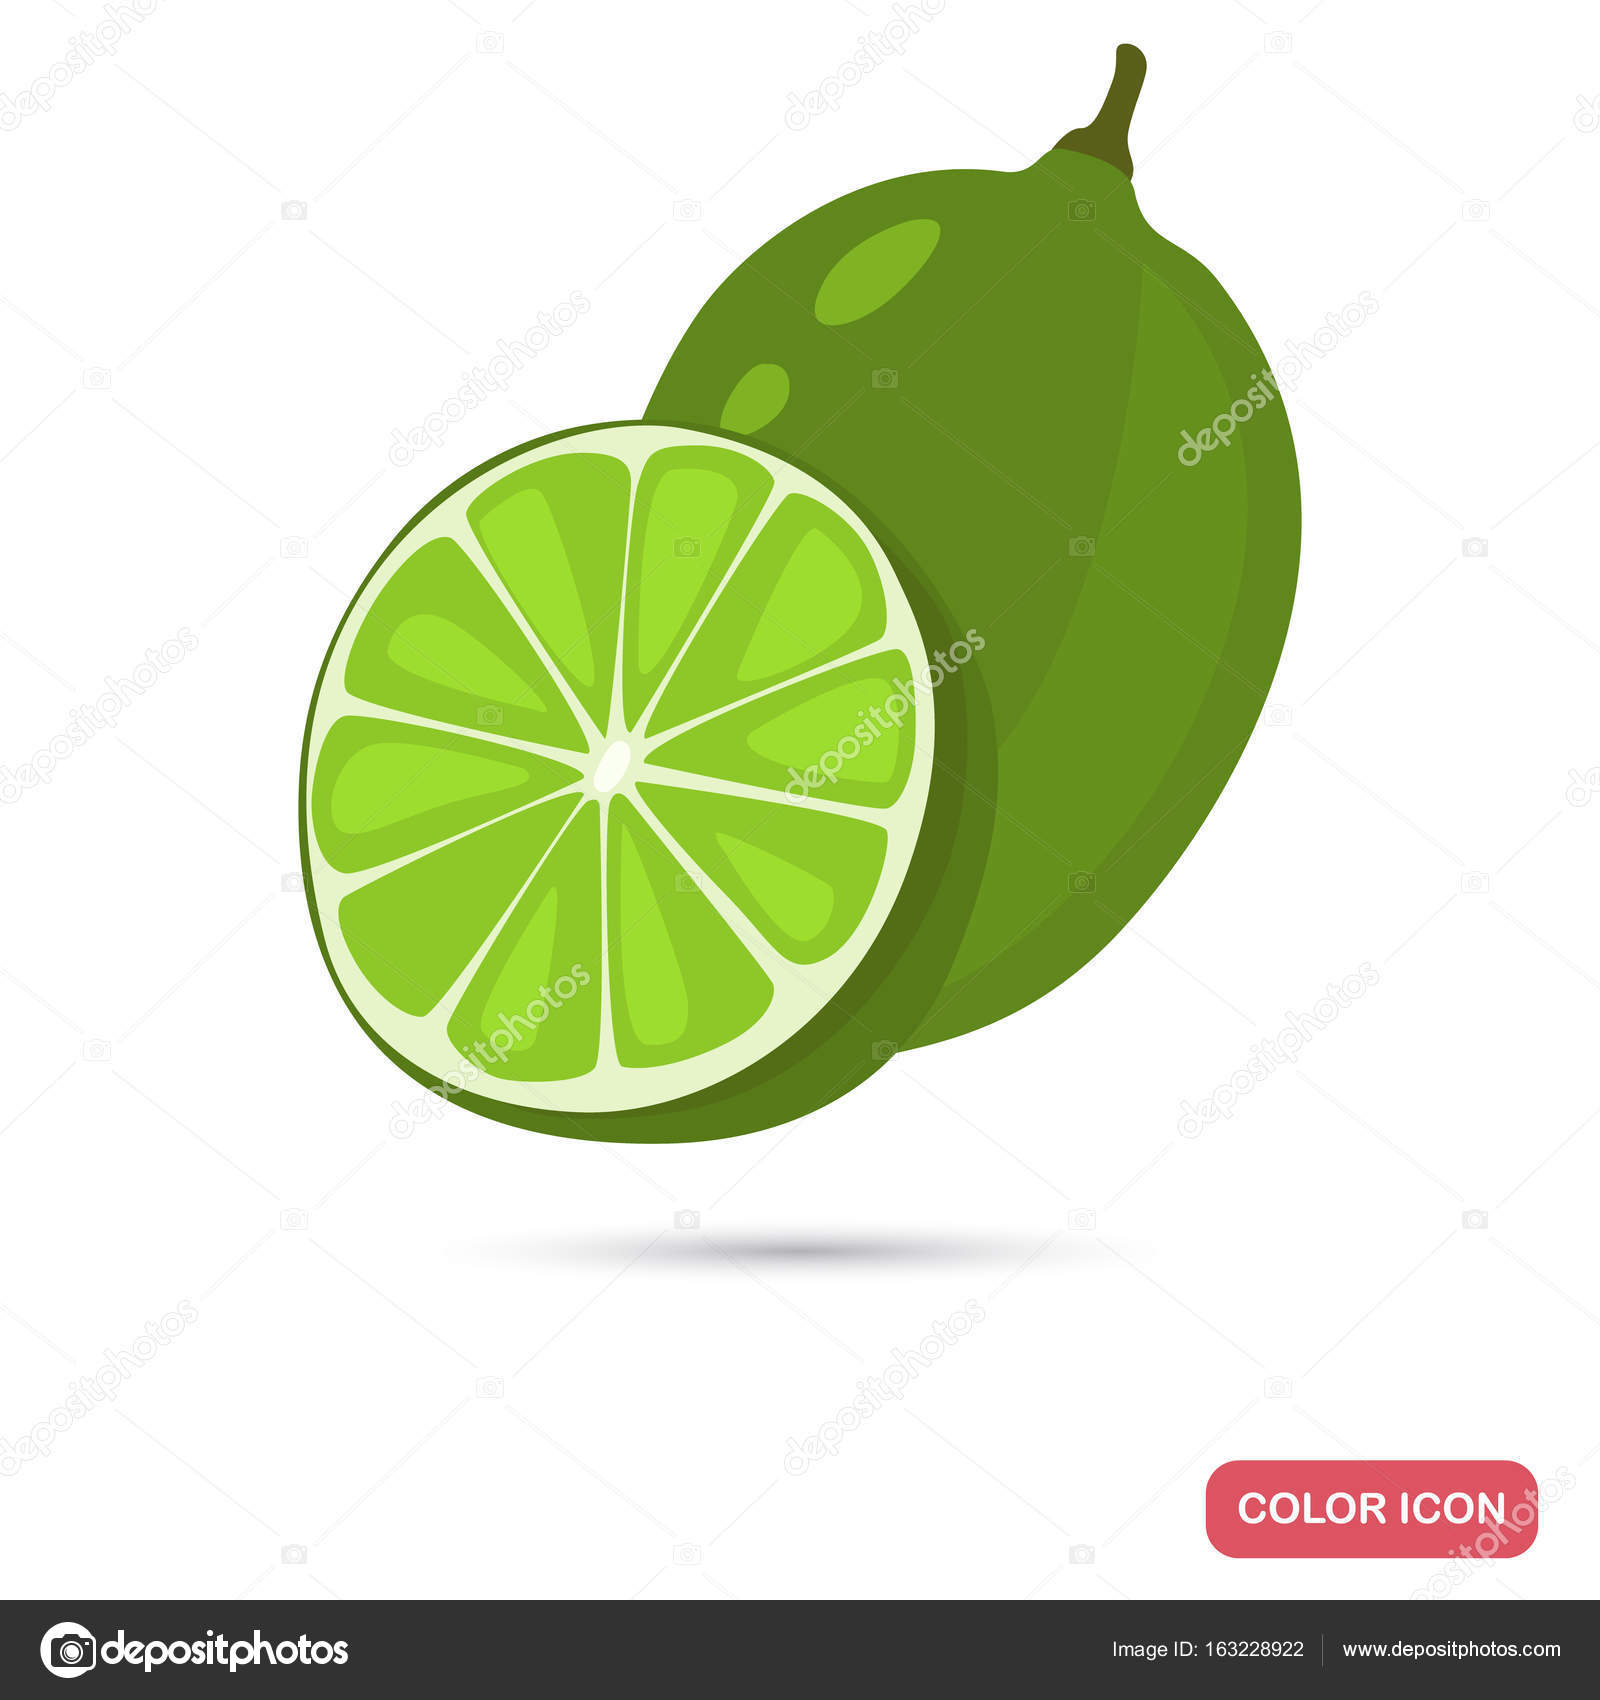 Web colors lime - Lime Color Flat Icon For Web And Mobile Design Stock Vector 163228922